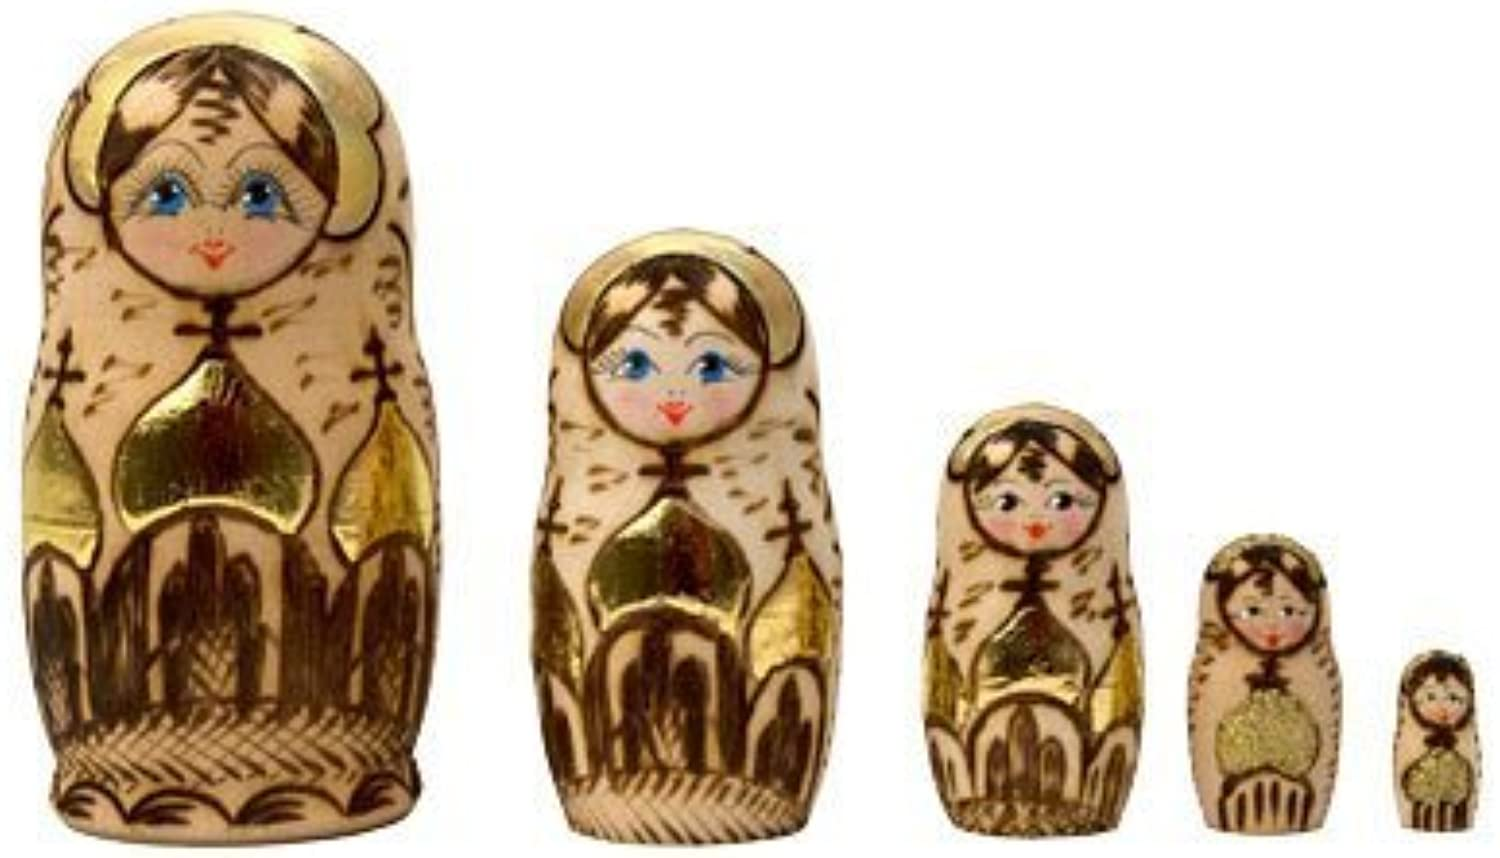 Woodburned Church Russian Nesting Doll 5pc. 4 by golden Cockerel